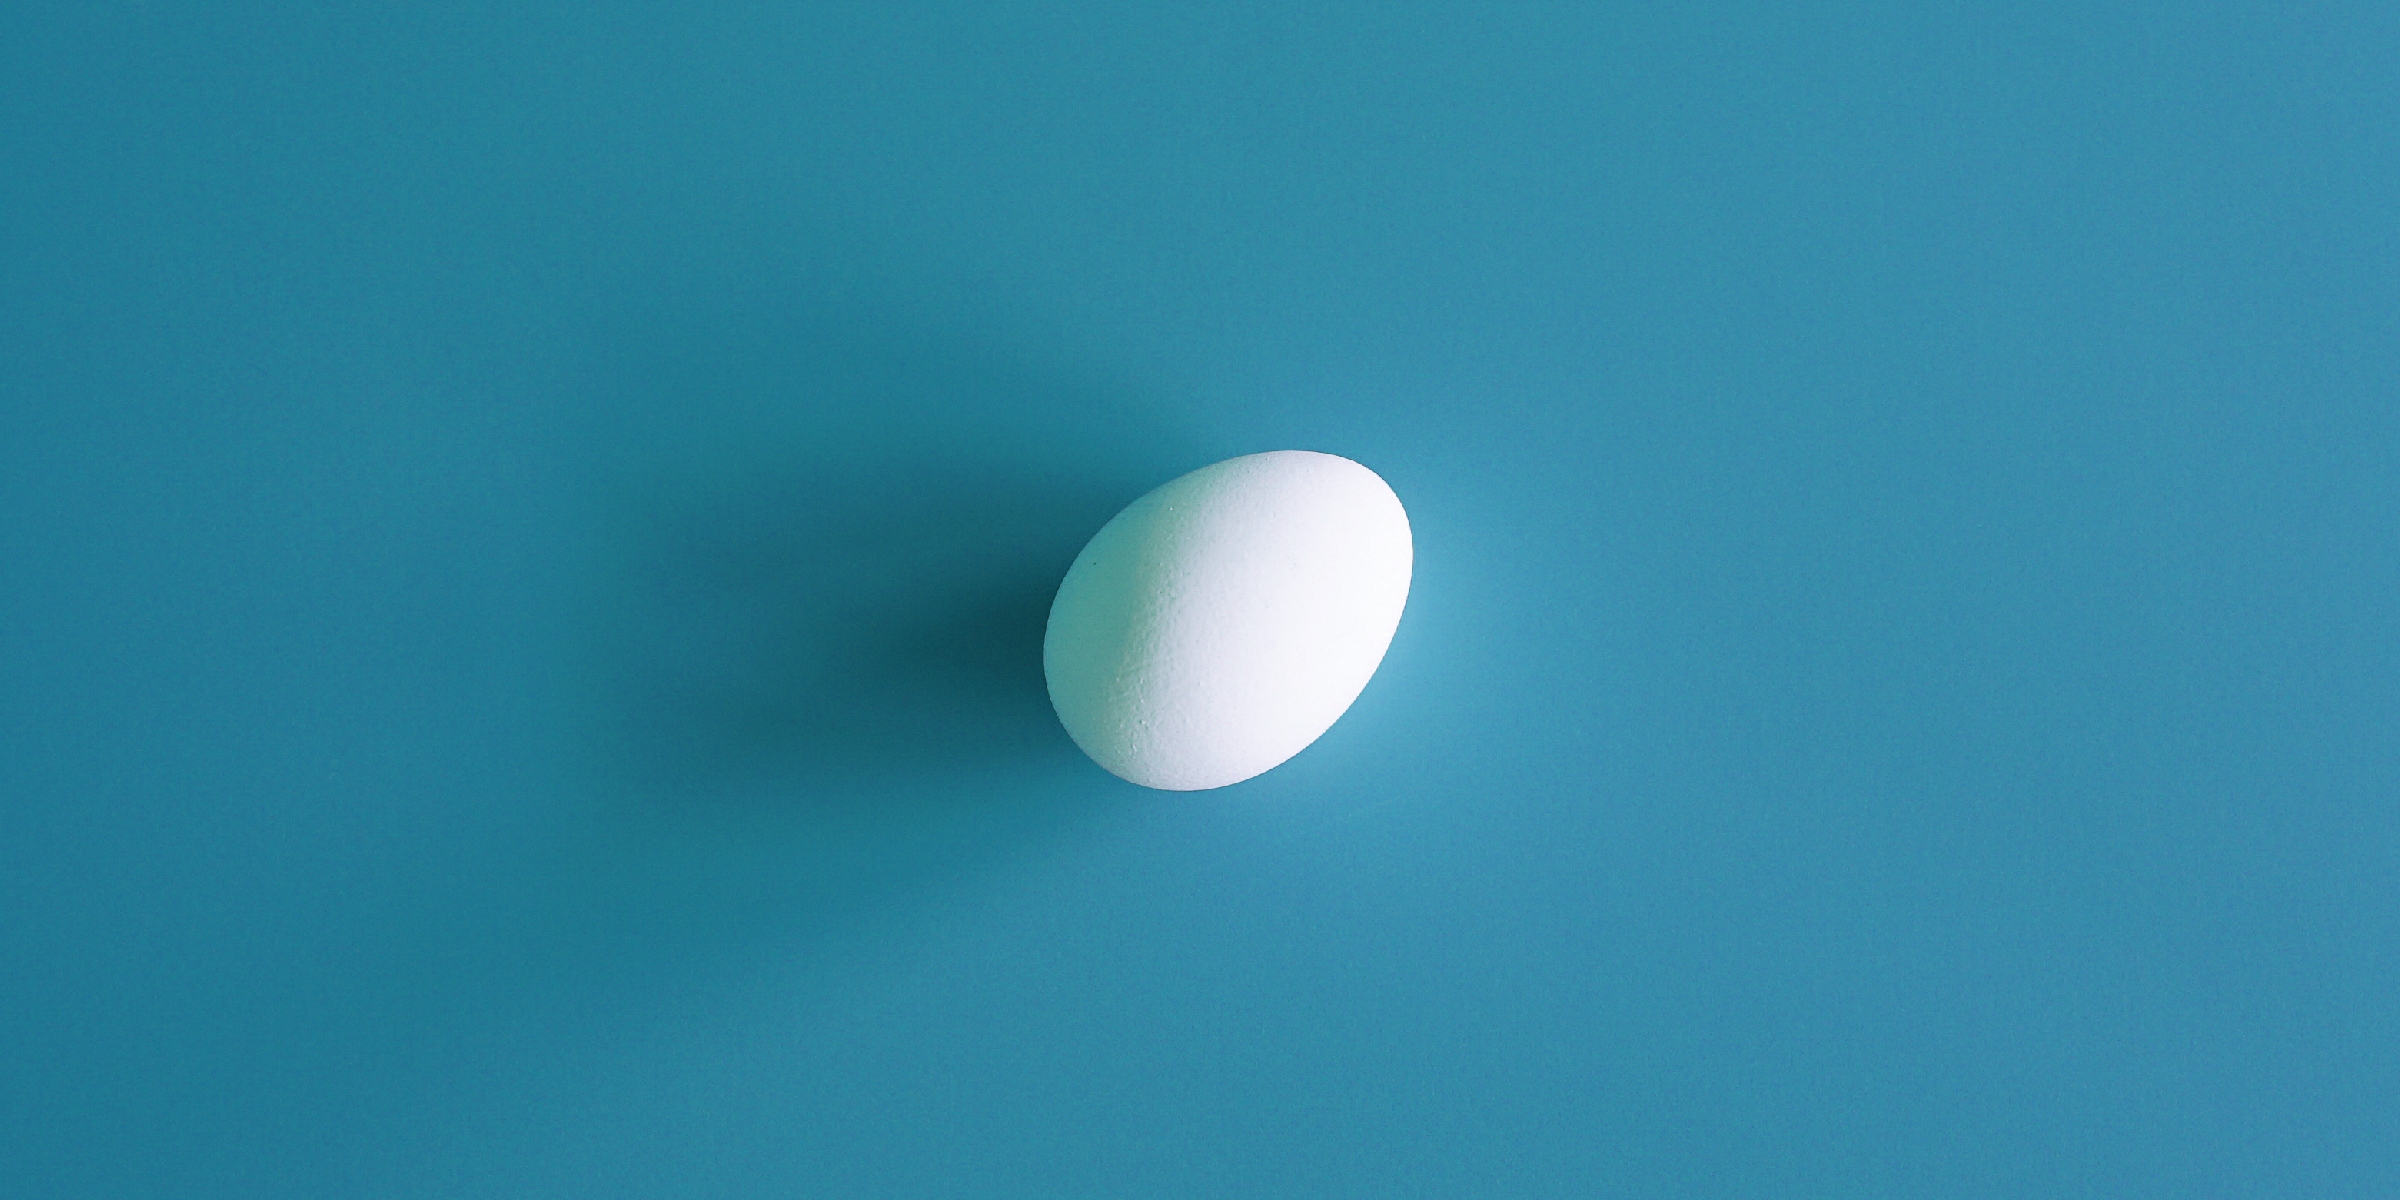 Photograph of a white egg on a marine background